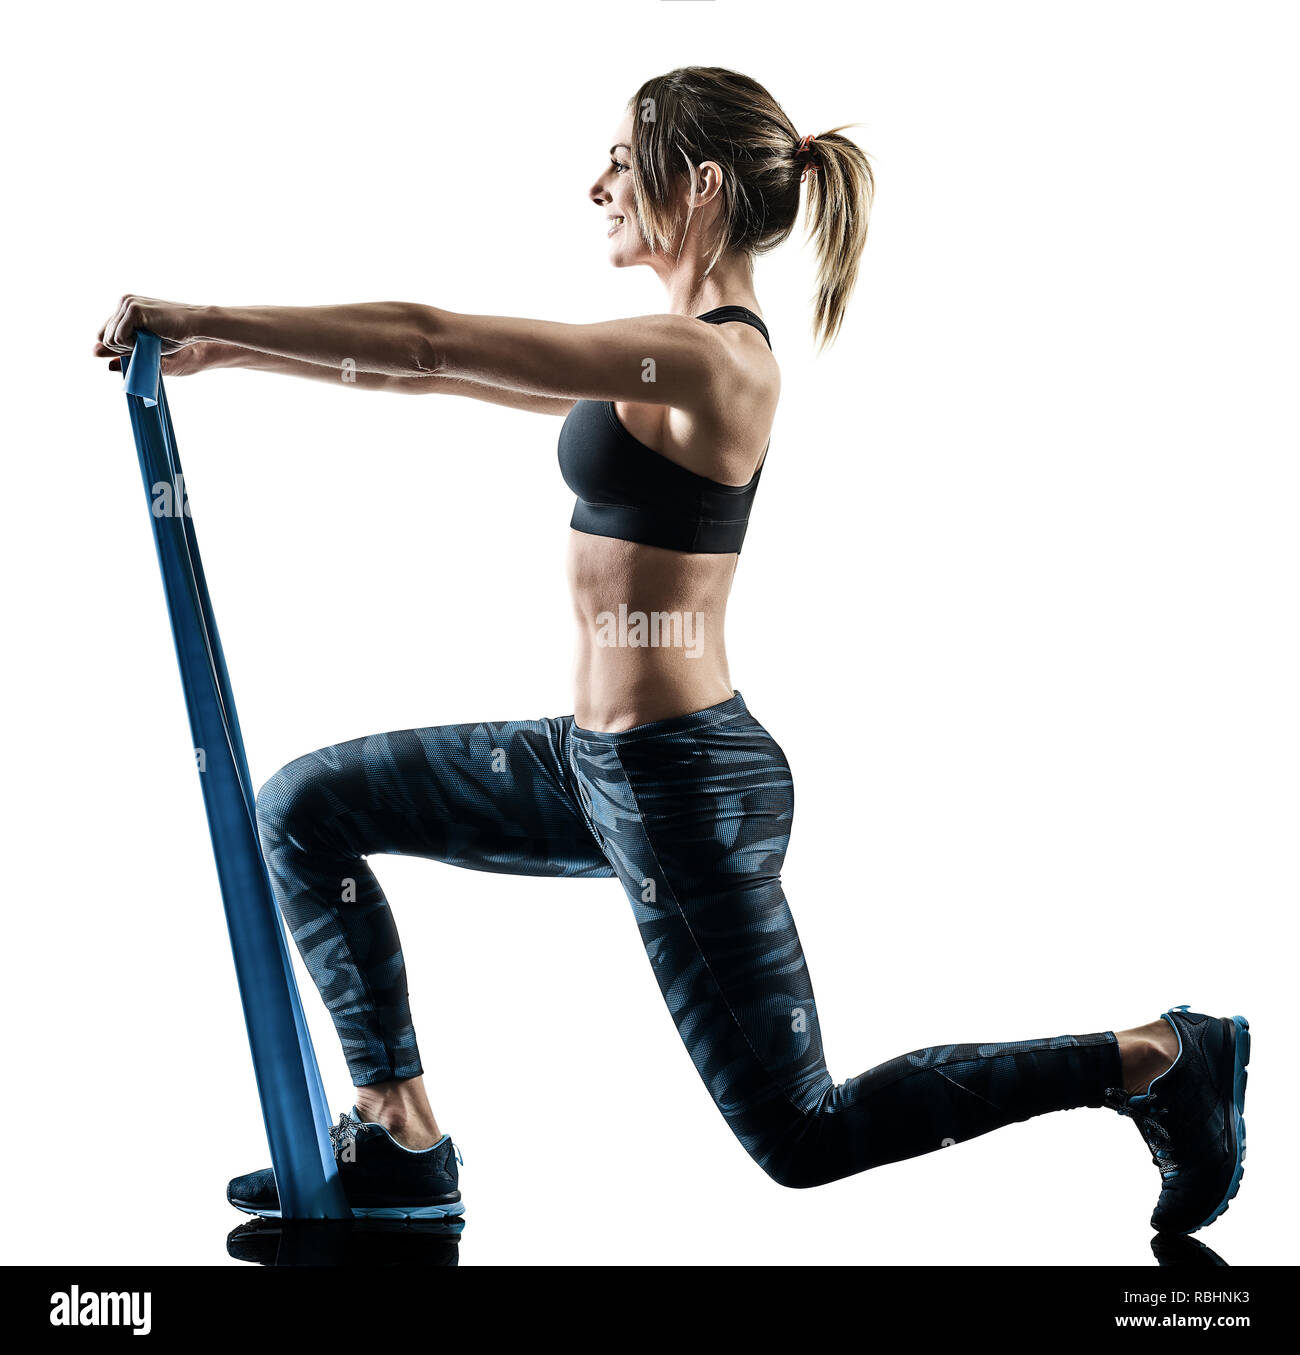 Woman Pilates Chair Exercises Fitness Stock Photo: Lunges Stock Photos & Lunges Stock Images